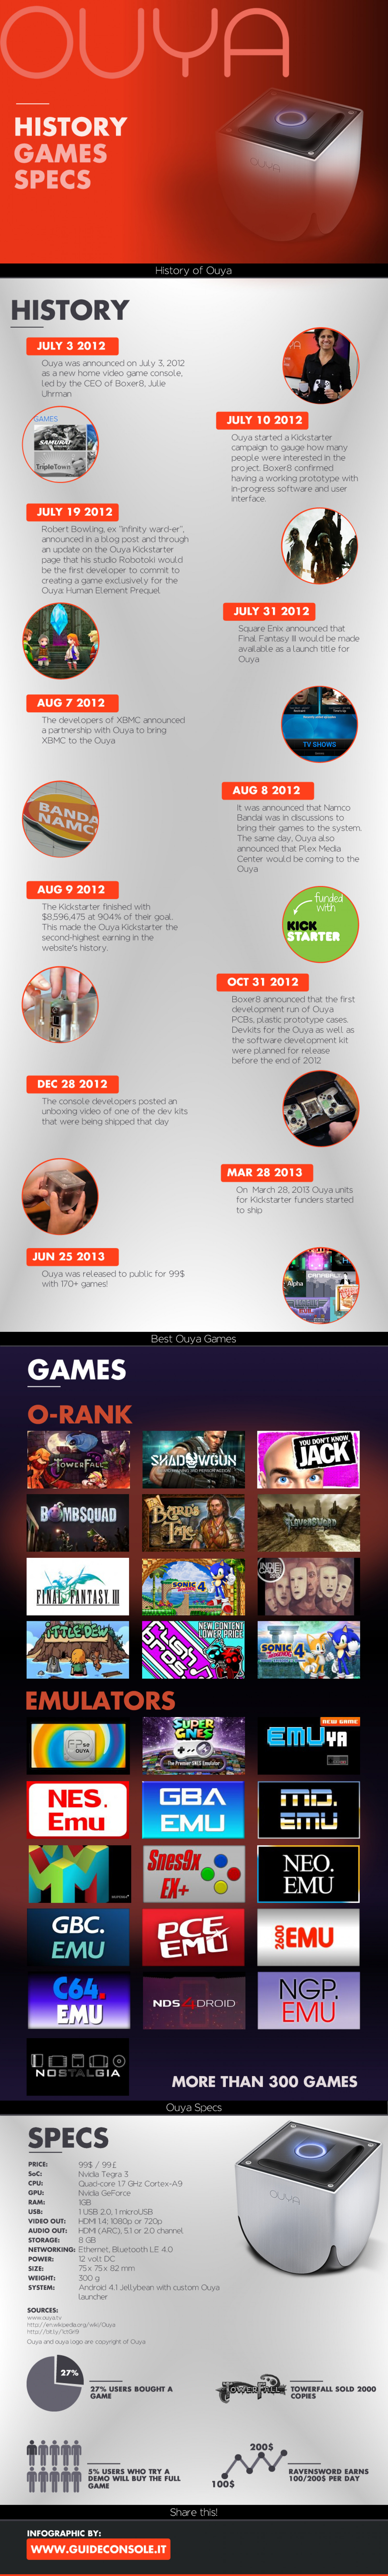 Ouya: Games, History, Data and Specs Infographic